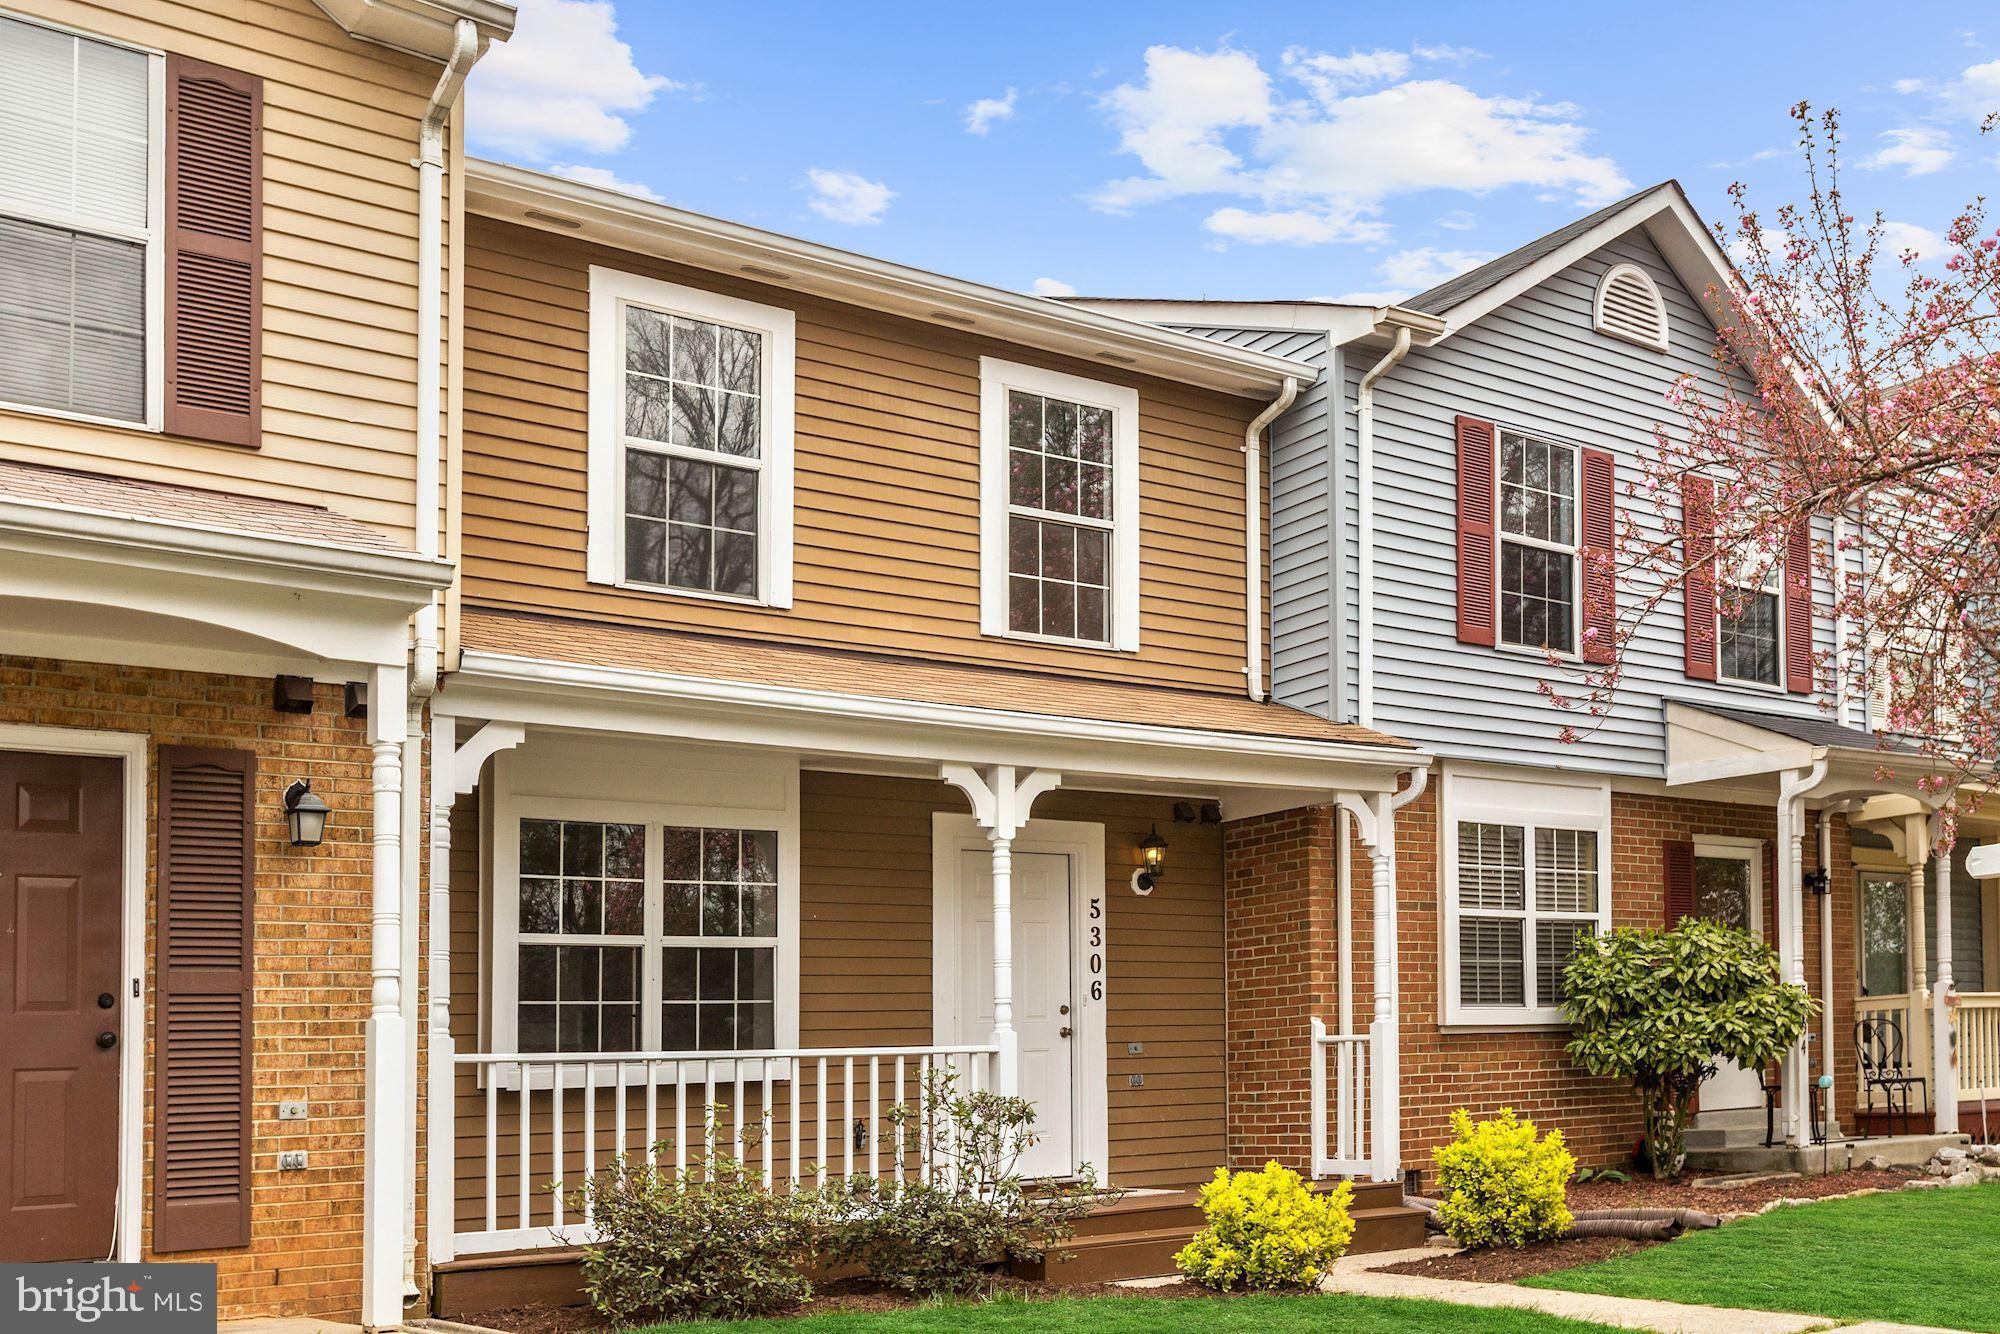 This 3 Bed/2.5 Bath townhouse is move-in ready and features an open living space with updates throughout and a wonderful fenced in backyard. This home is highlighted by the sun-filled eat-in kitchen offering granite counters, stainless steel appliances with gas cooking, and tile floors. The spacious living/dining area offers hardwood floors, access to the convenient main level powder room, and walk-out to the fenced-in backyard. The upper level is complete with a master suite and two additional bedrooms, all with wall to wall carpet, ceiling fans, and ample closet space. This home is located close to plenty of shopping and dining options and provides easy access to 95.